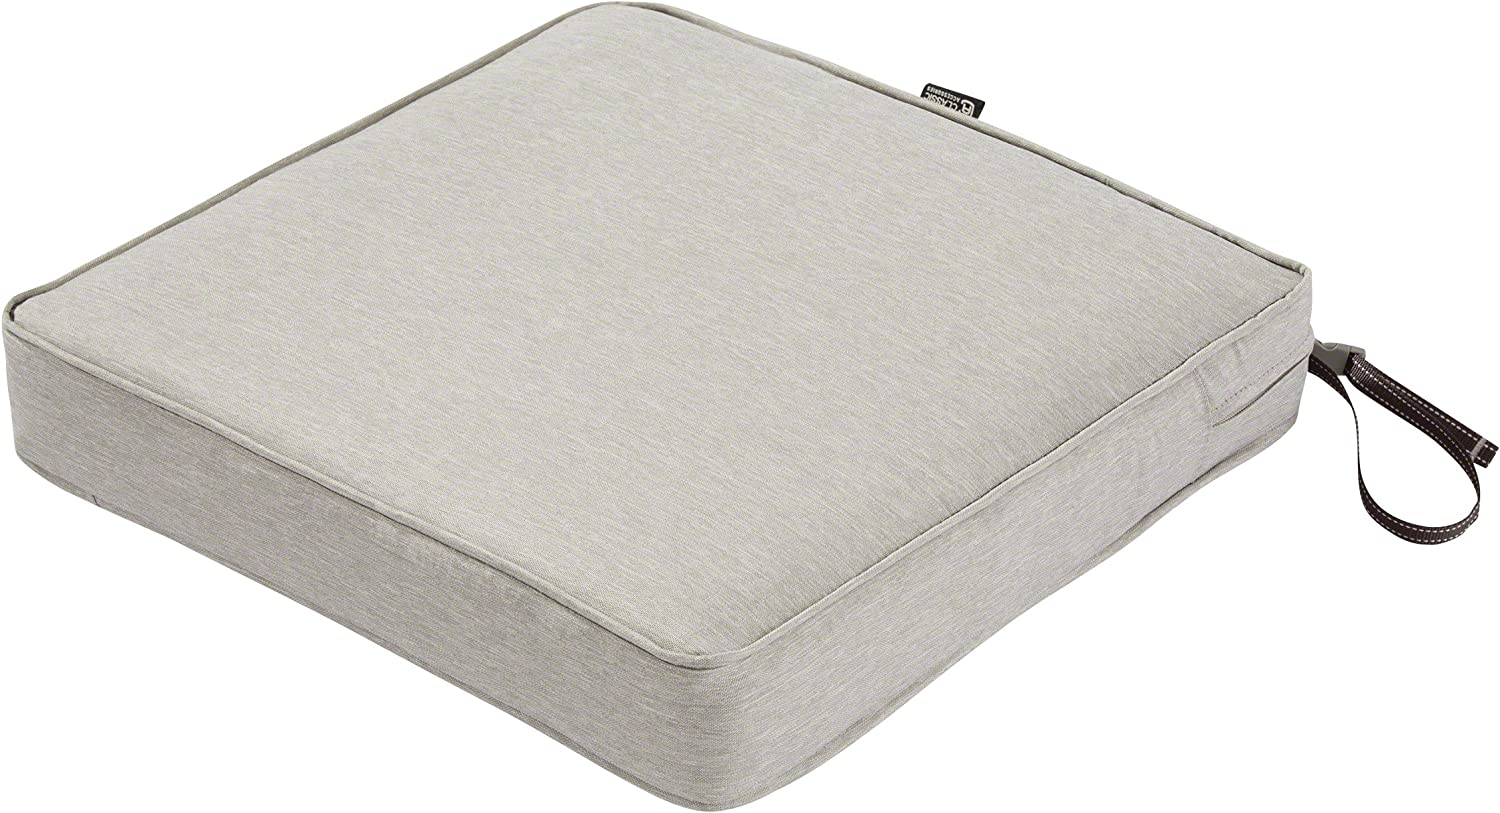 Classic Accessories Montlake Water-Resistant 19 x 19 x 3 Inch Patio Seat Cushion, Heather Grey